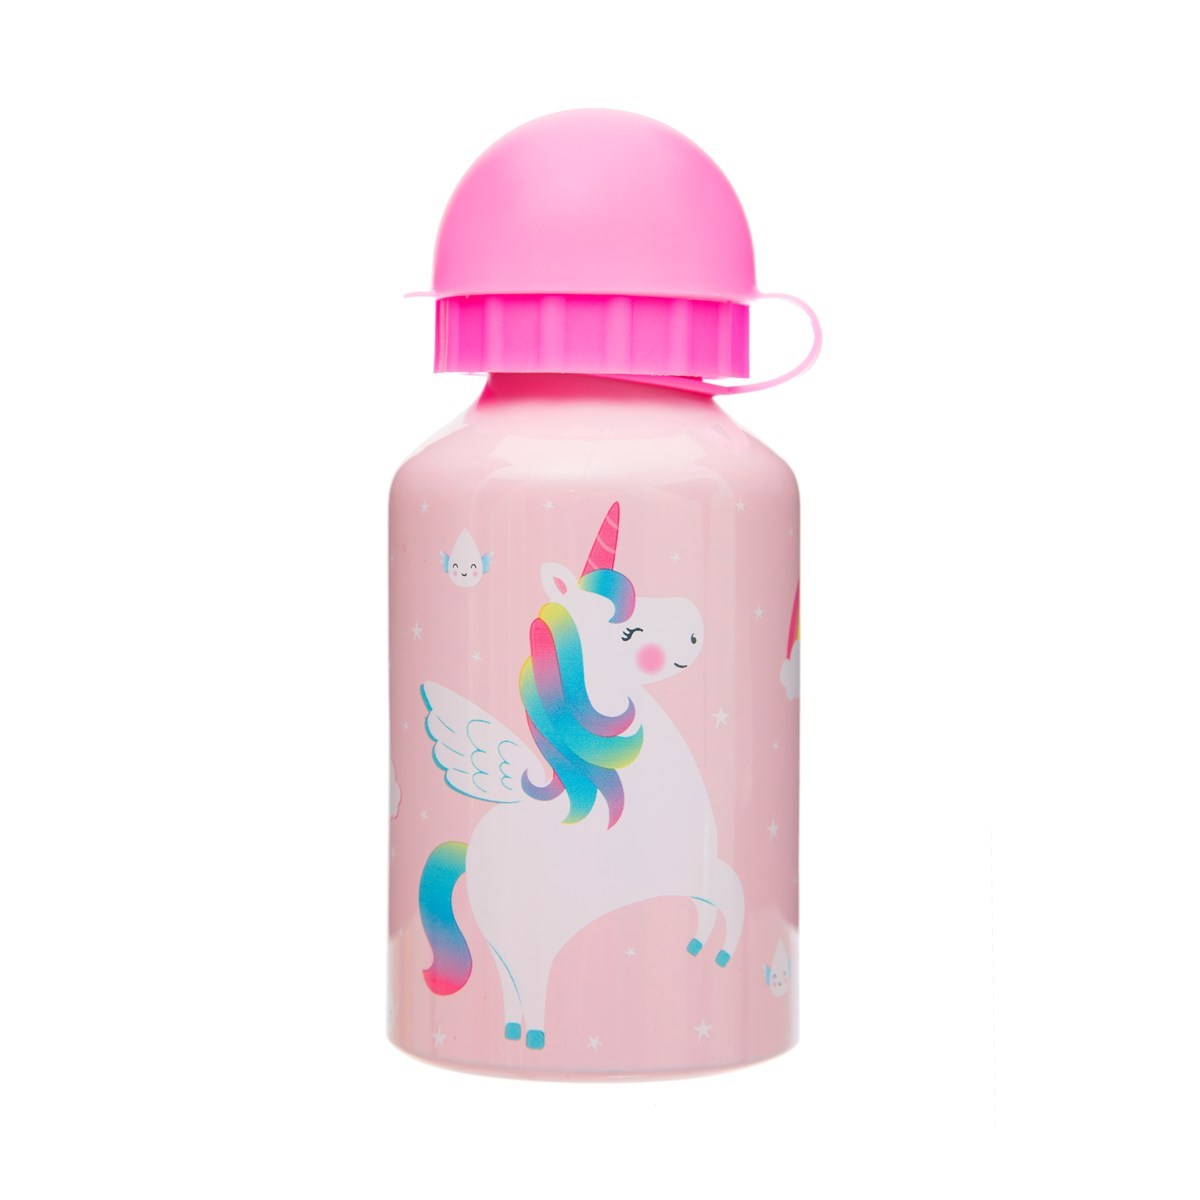 Láhev na vodu Rainbow Unicorn 300ml_1